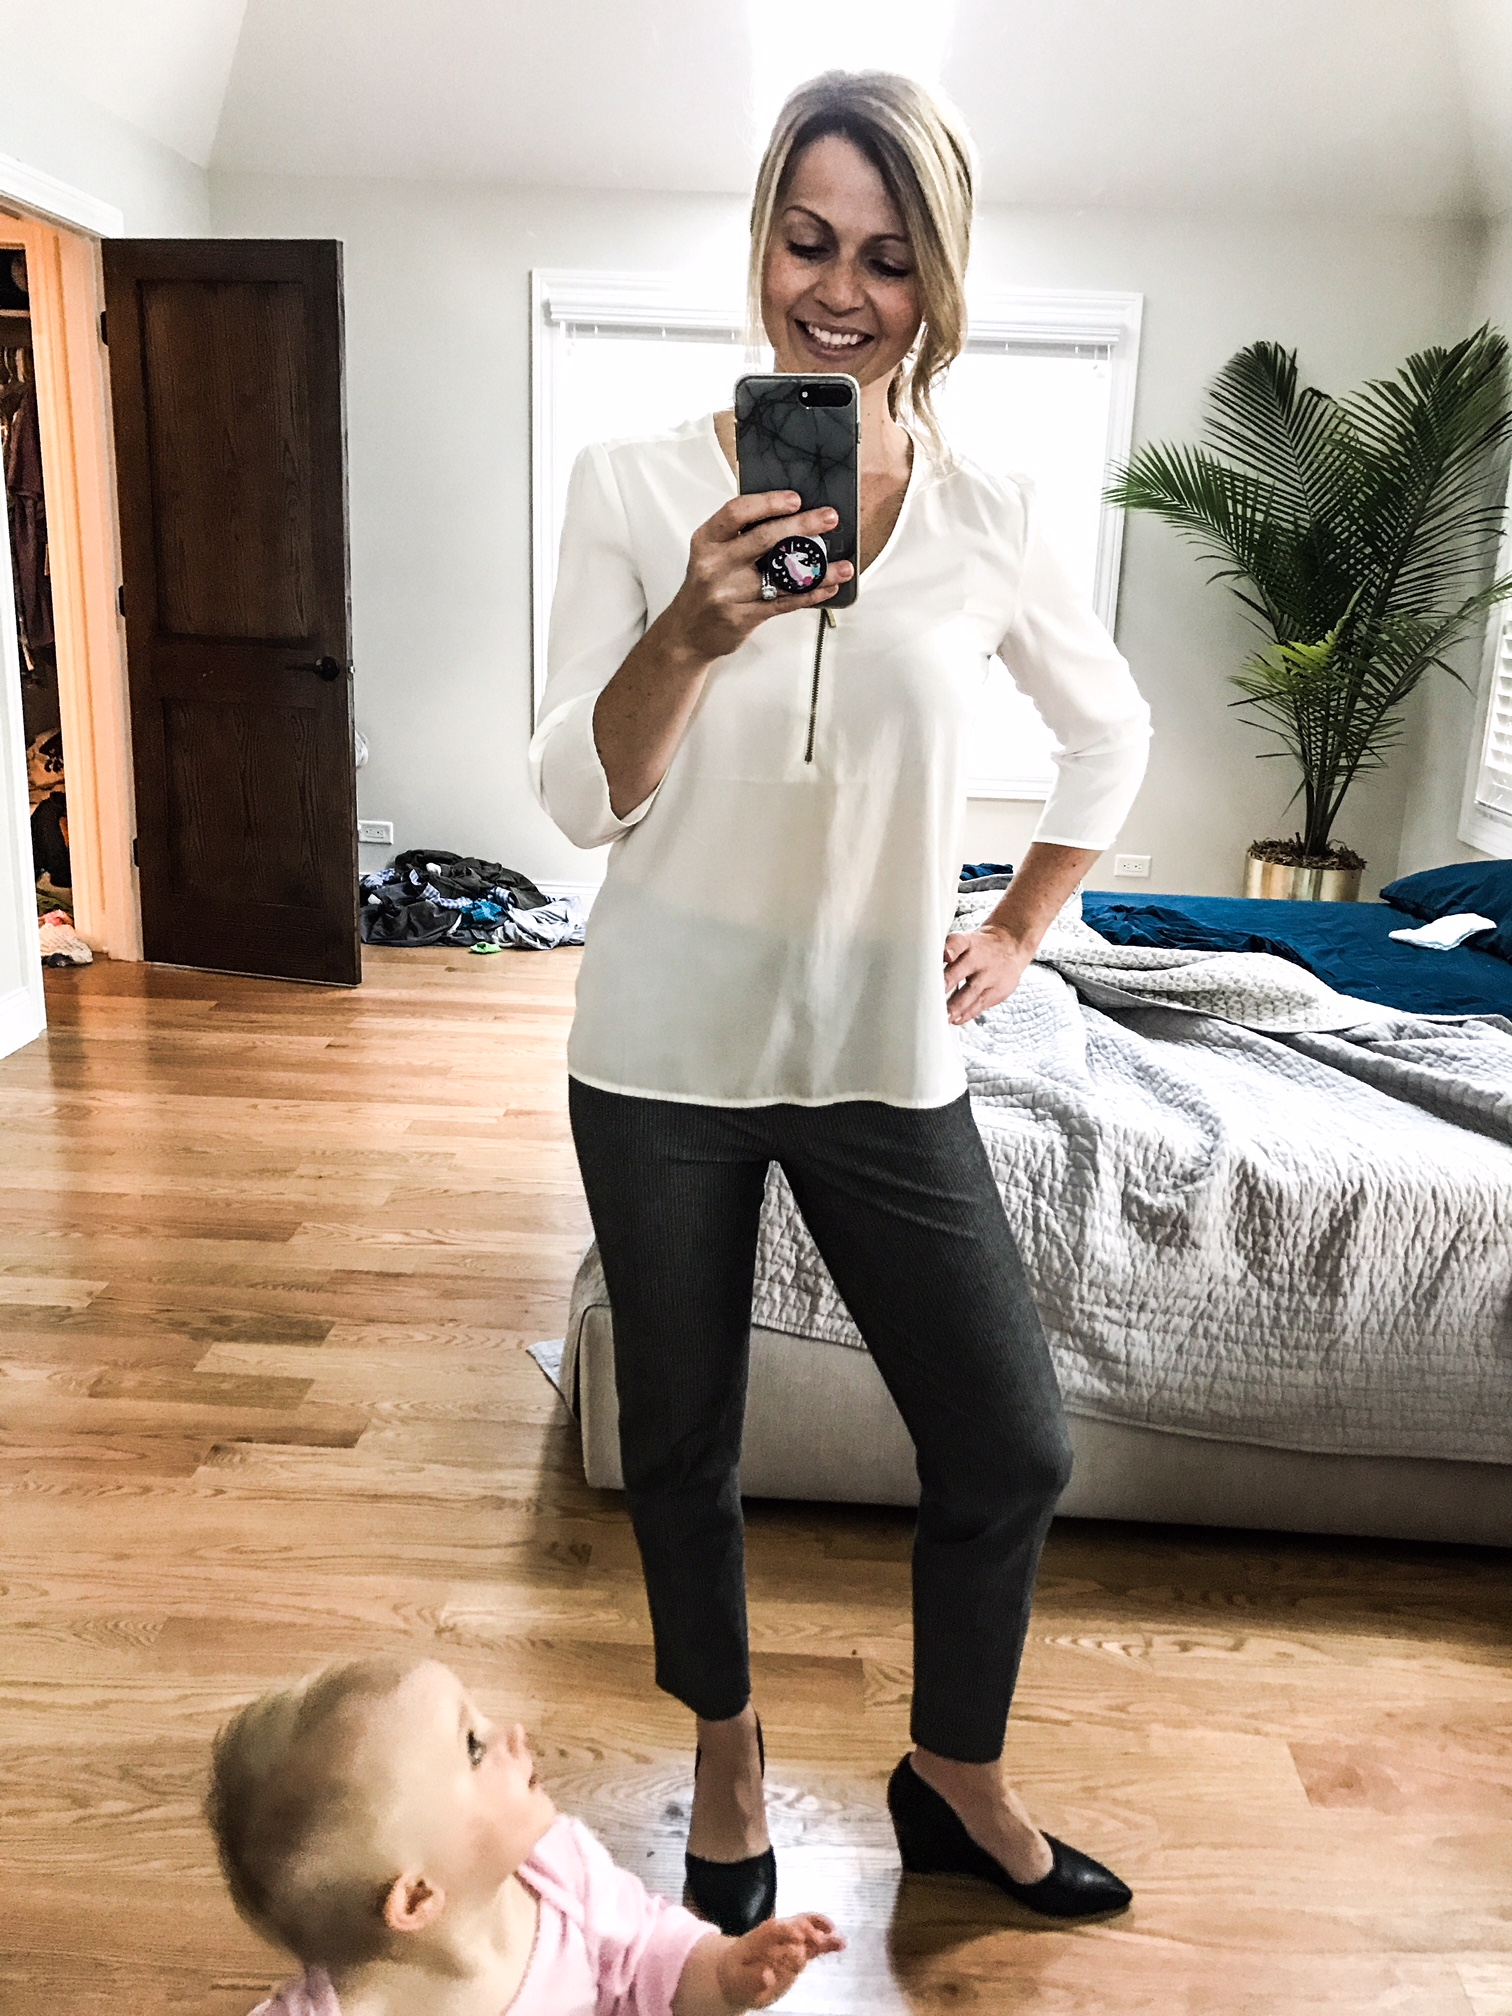 How To Keep Motivated When Trying To Reach A Fitness Goal. Postpartum Weight Loss. How To Lose The Pregnancy Weight. Bouncing Back After Having A Baby. #Postpartum #fitness #bounce #back